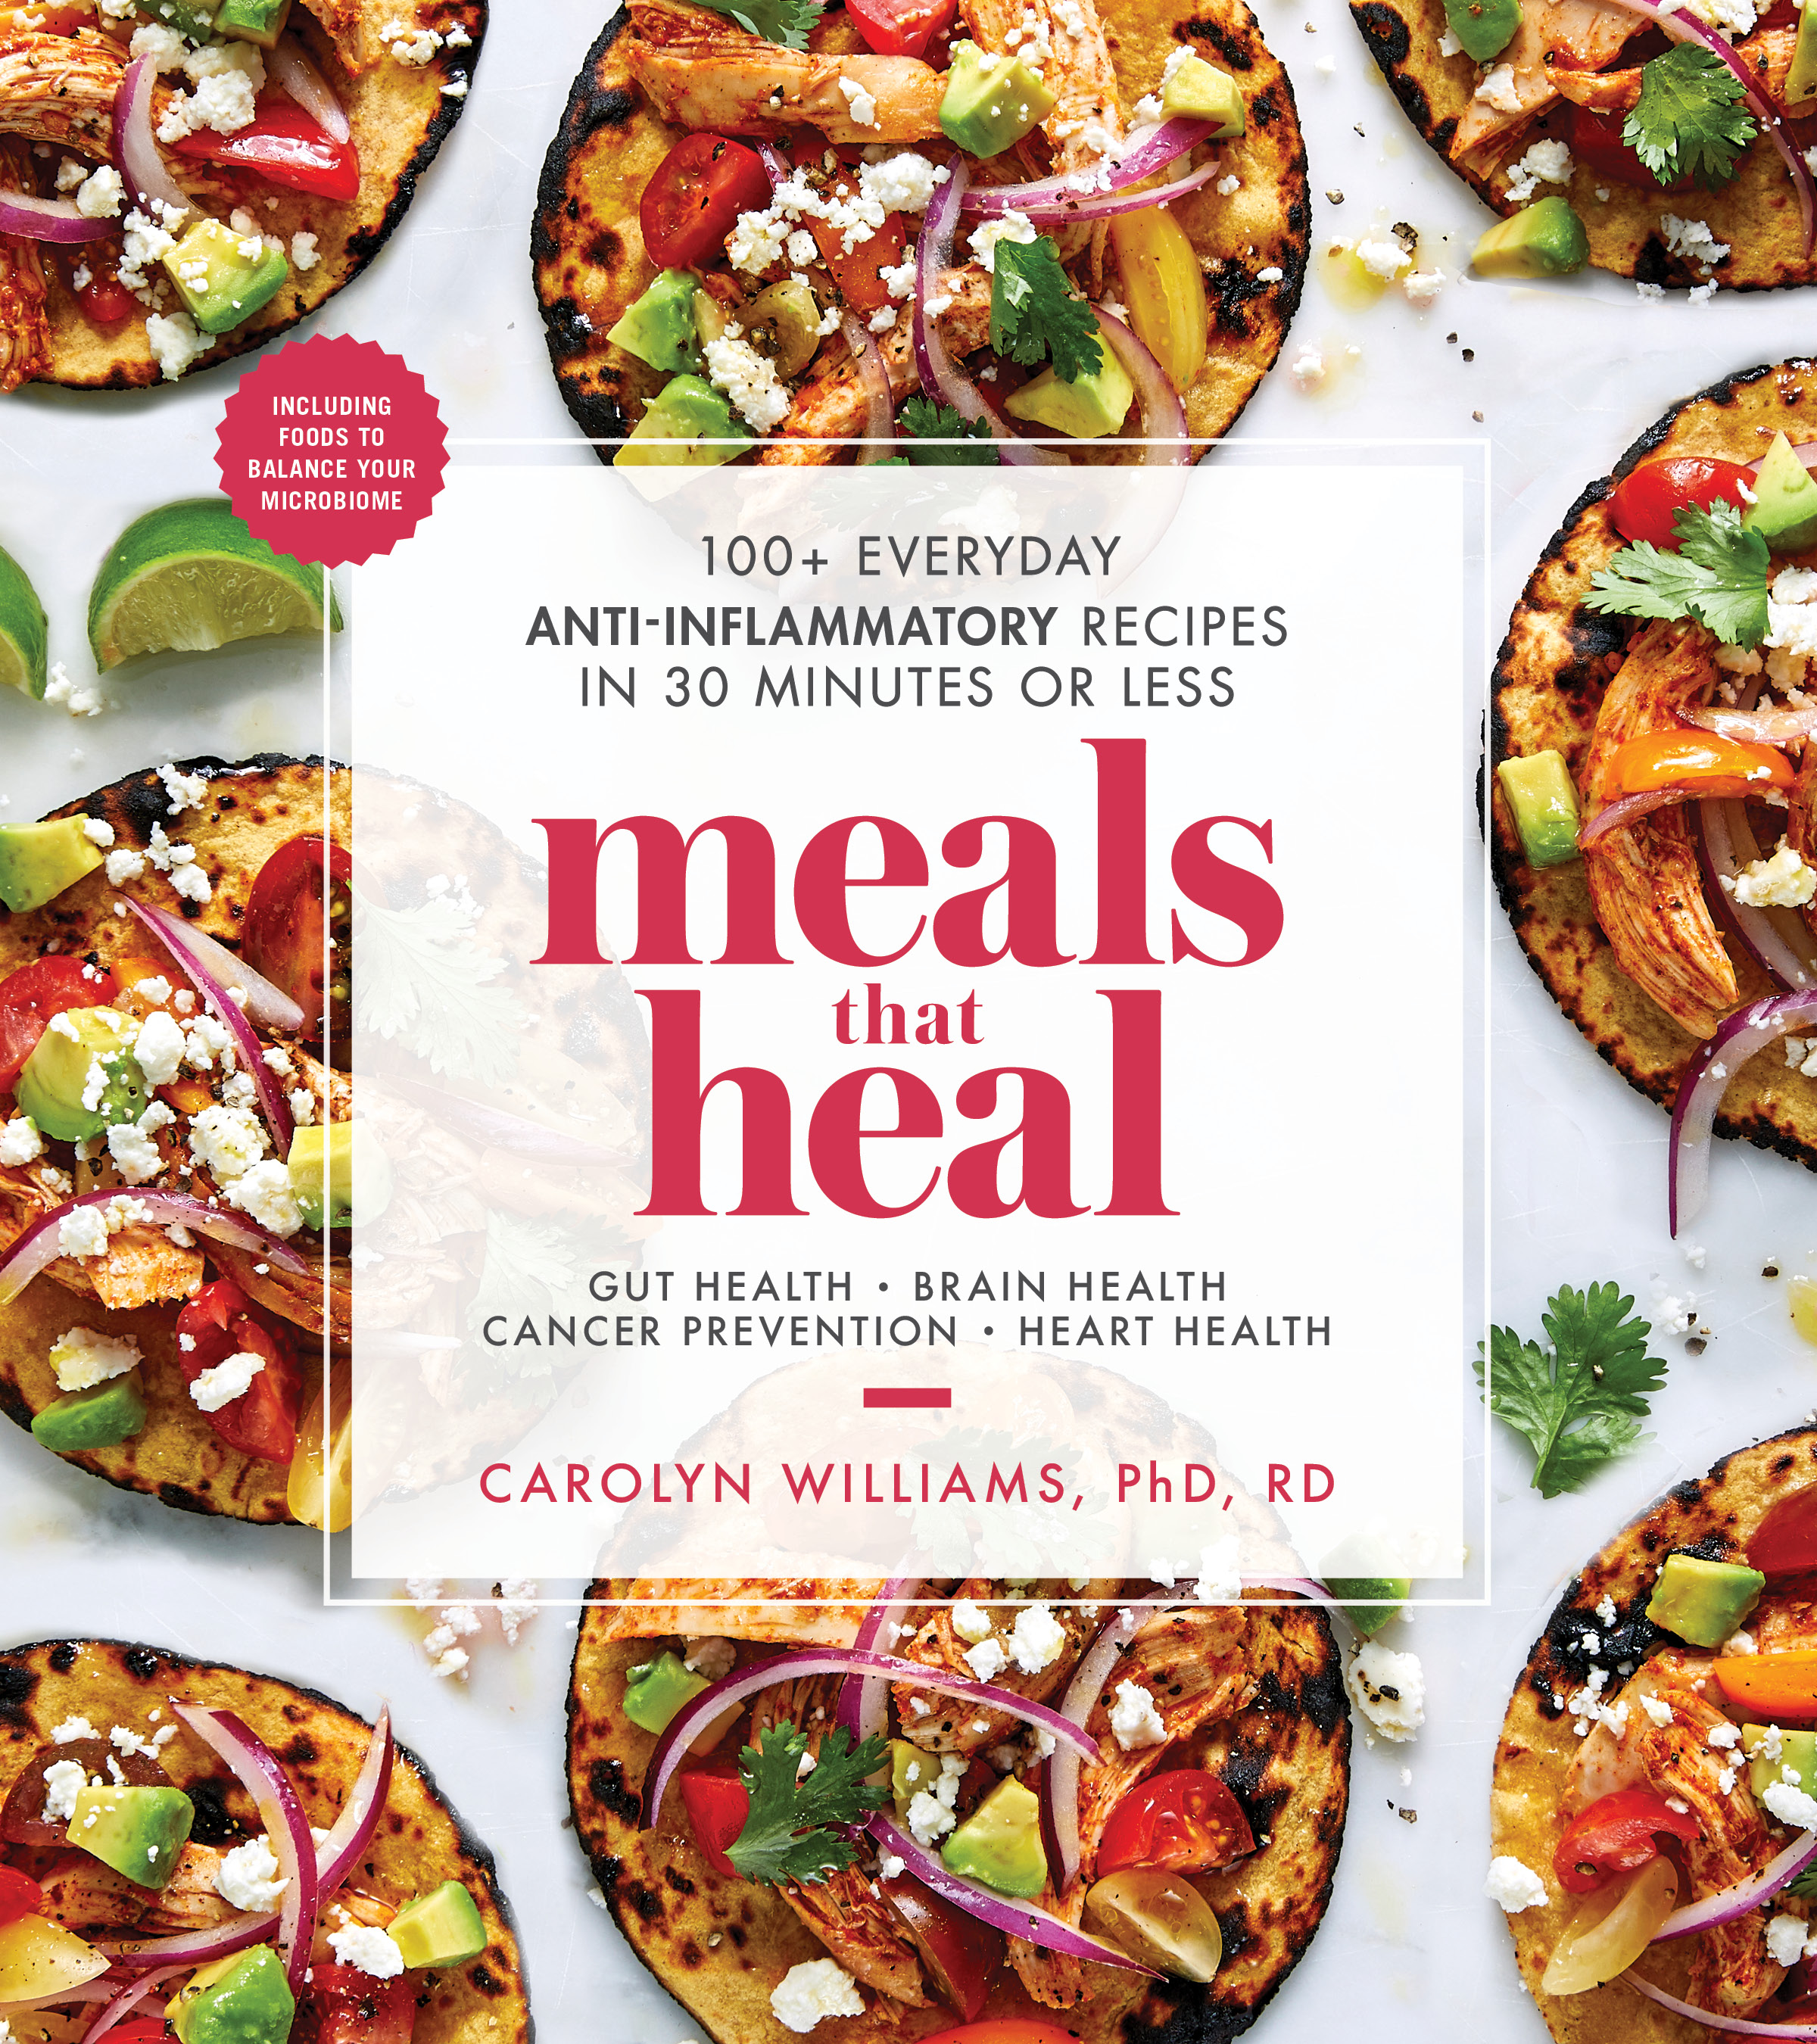 In case you don't know, I have a brand new cookbook ! - You can now find MEALS THAT HEAL: 100+ EVERYDAY ANTI-INFLAMMATORY RECIPES in 30 MINUTES or LESS on the shelf at the store and bring it home for your whole family to enjoy! You'll love this family-friendly cookbook with recipes that you can use to stay healthy or tailor to treat most health conditions. Find out more about the cookbook here and here!